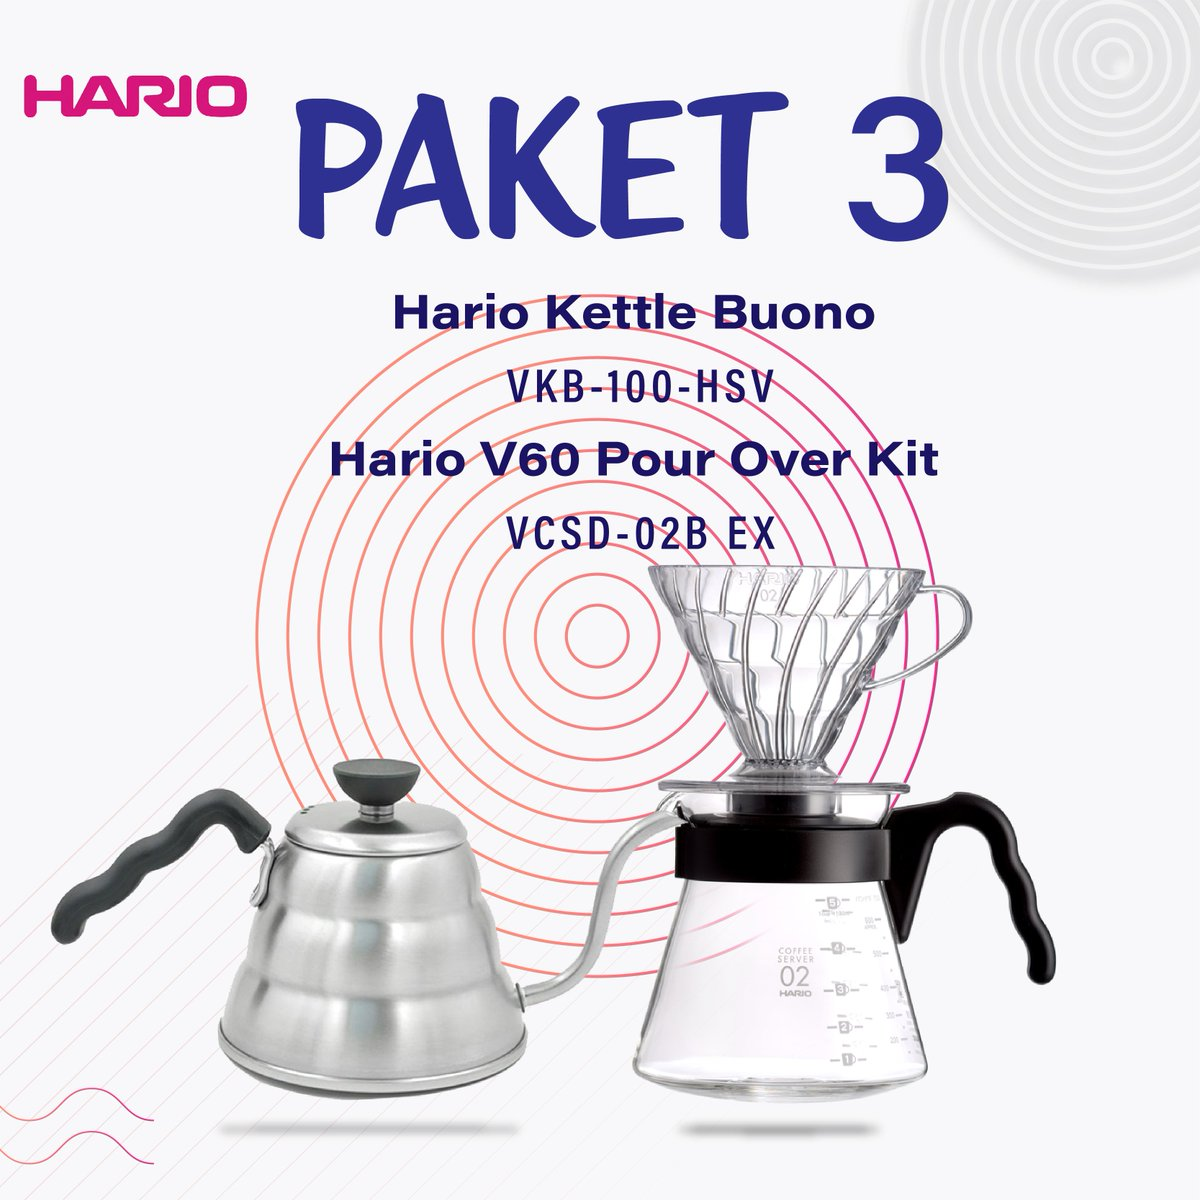 Hario Indonesia Twitter Drip Scale Vstm 2000hsv This Media May Contain Sensitive Material Learn More